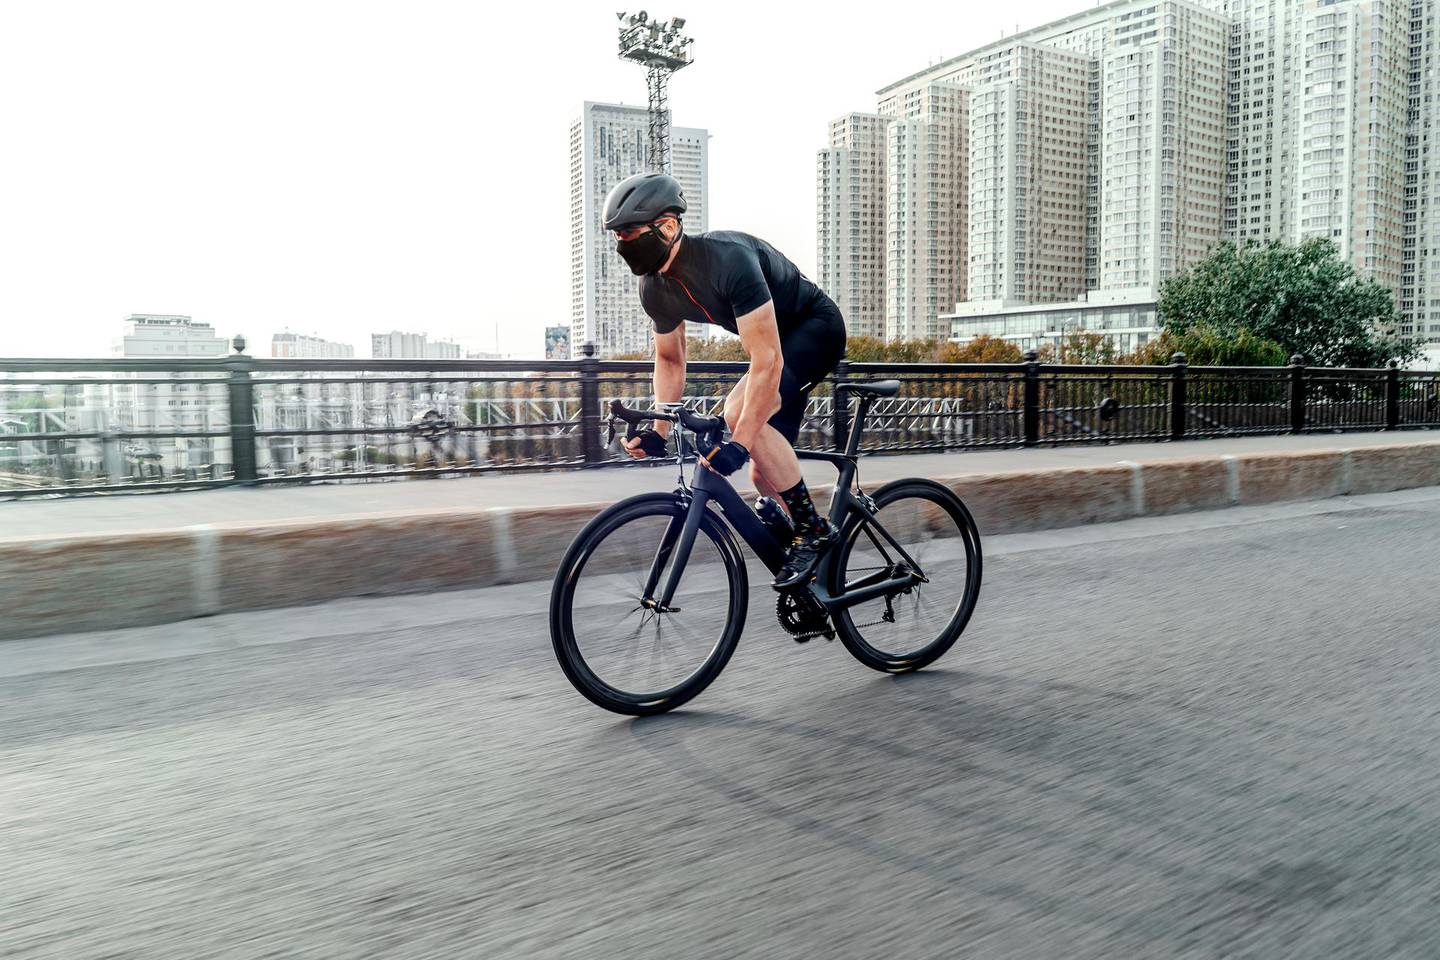 Athletic sportsman riding professional bike in race on a road on concrete bridge. Cyclist on professional bicycle training day. Concept of active lifestyle and outdoor hobby.